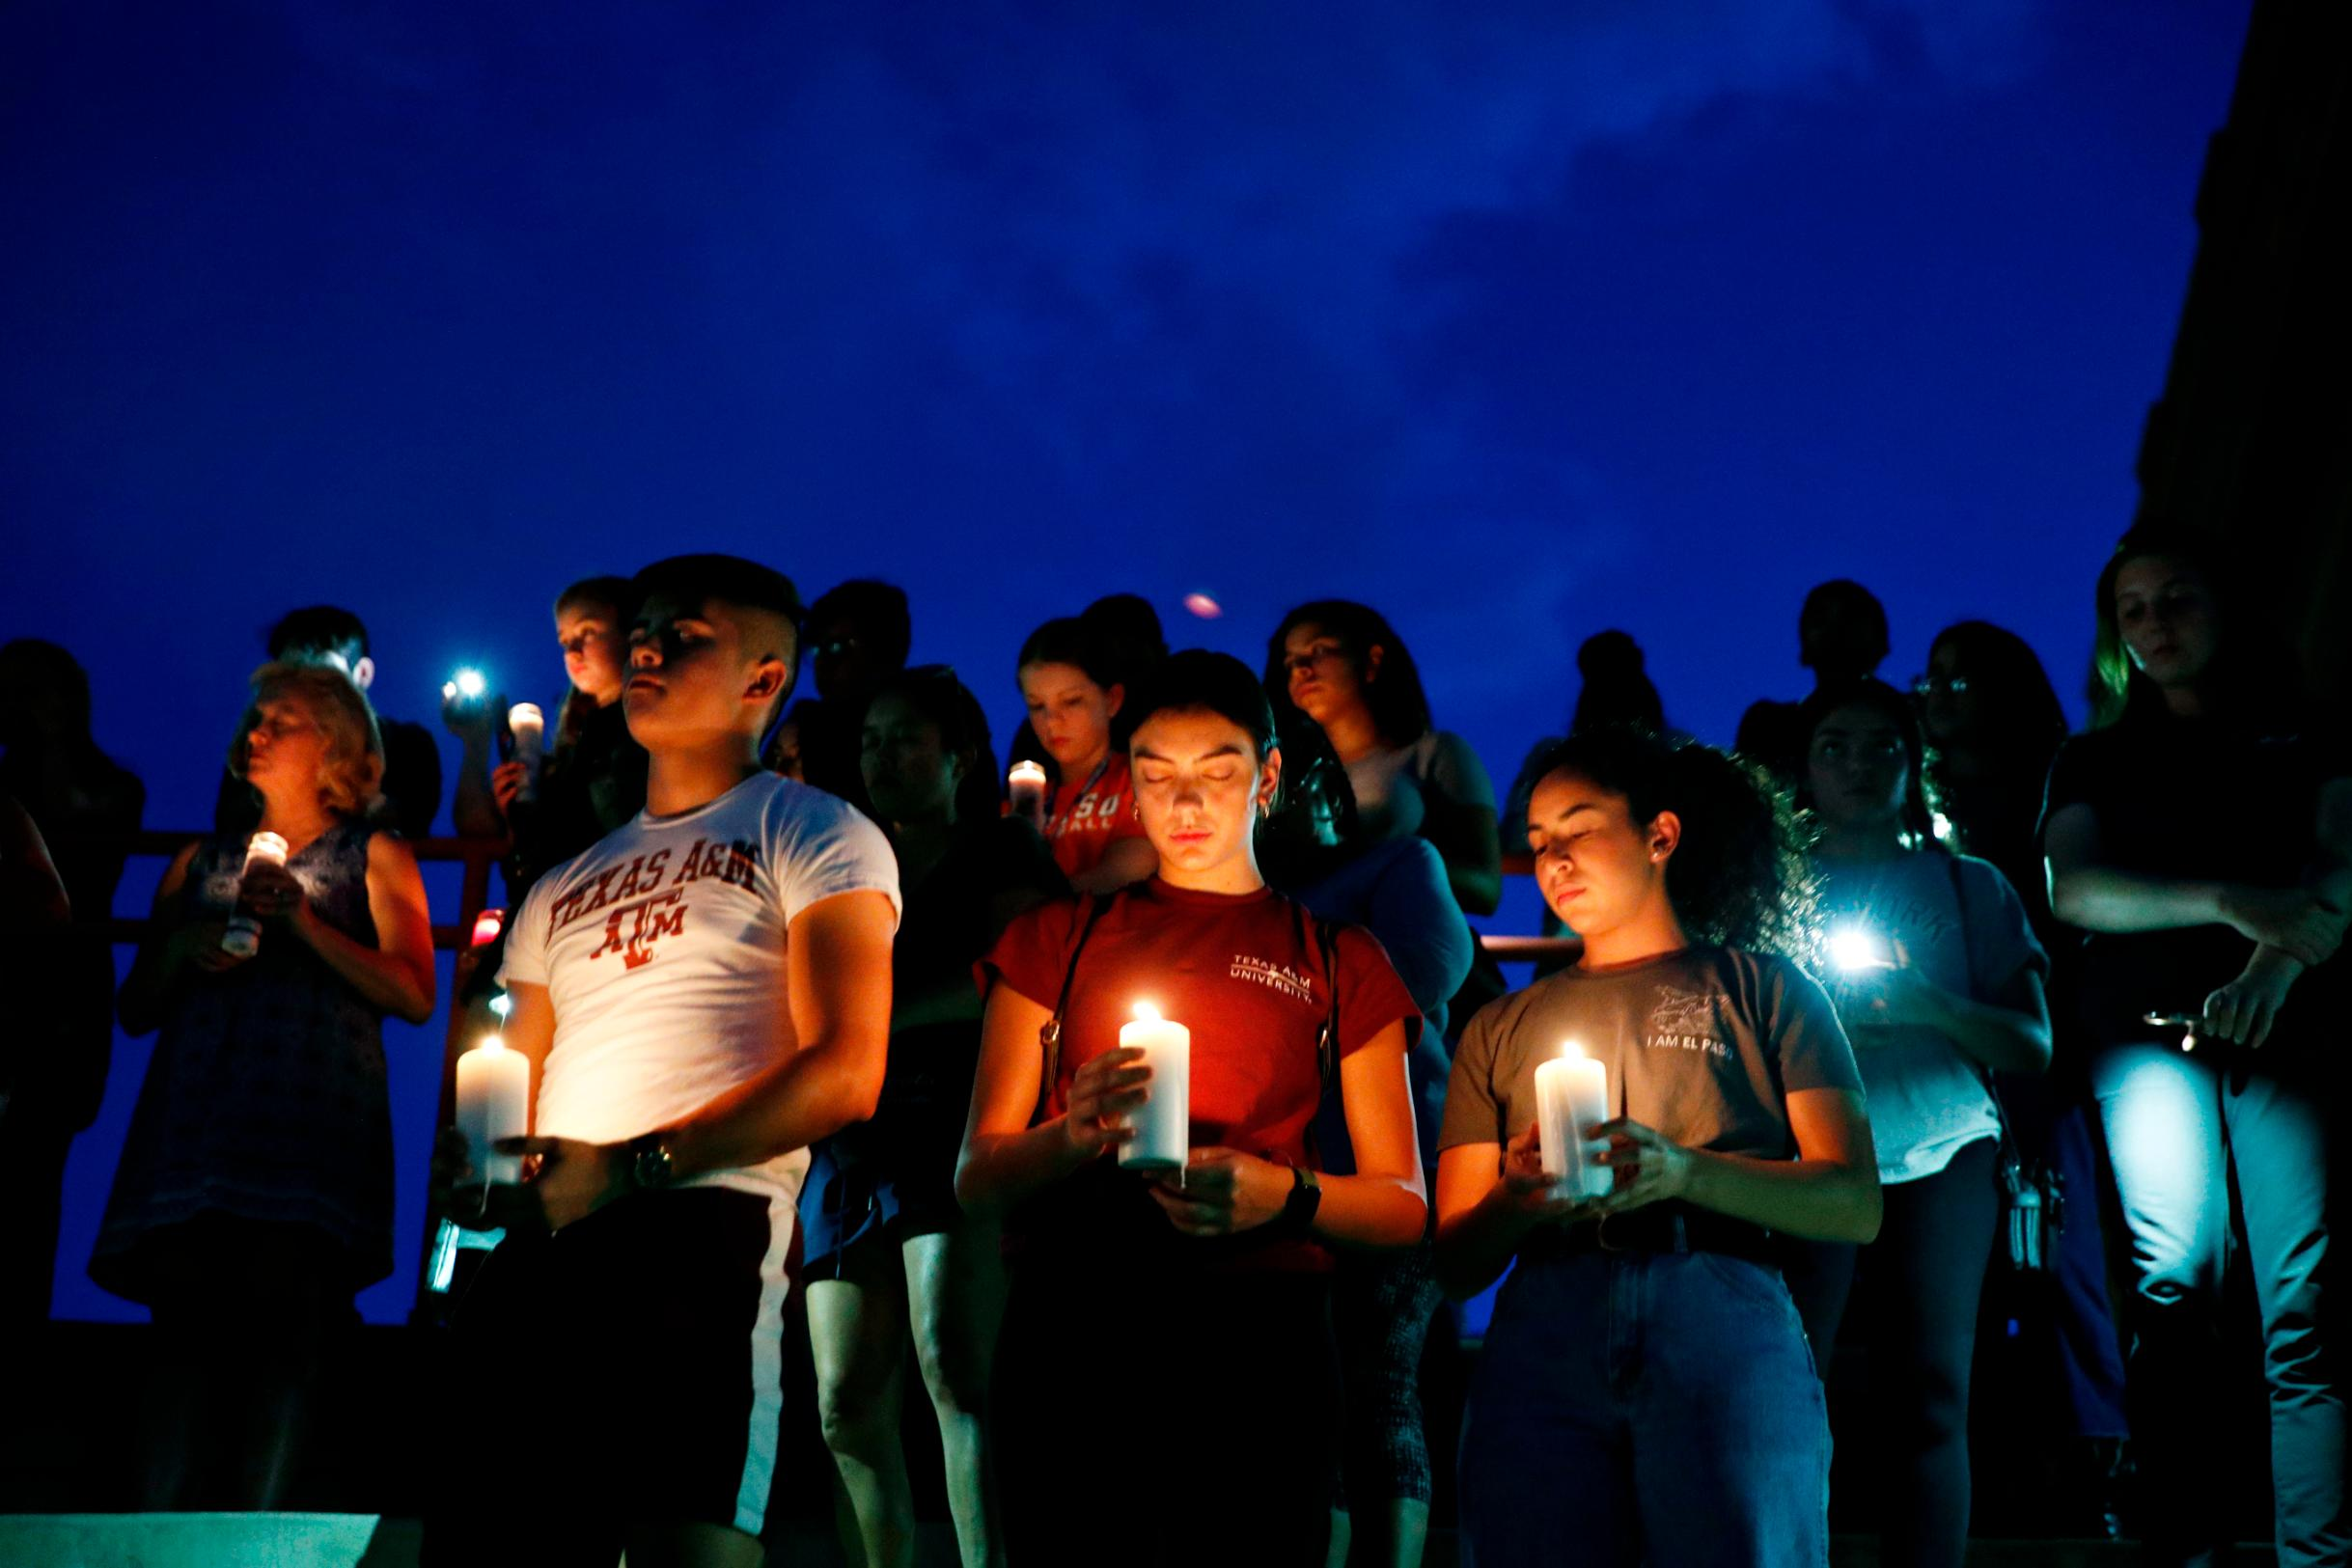 From left, Samuel Lerma, Arzetta Hodges and Desiree Quintanar attend a vigil for victims of the deadly shooting in El Paso on Saturday.